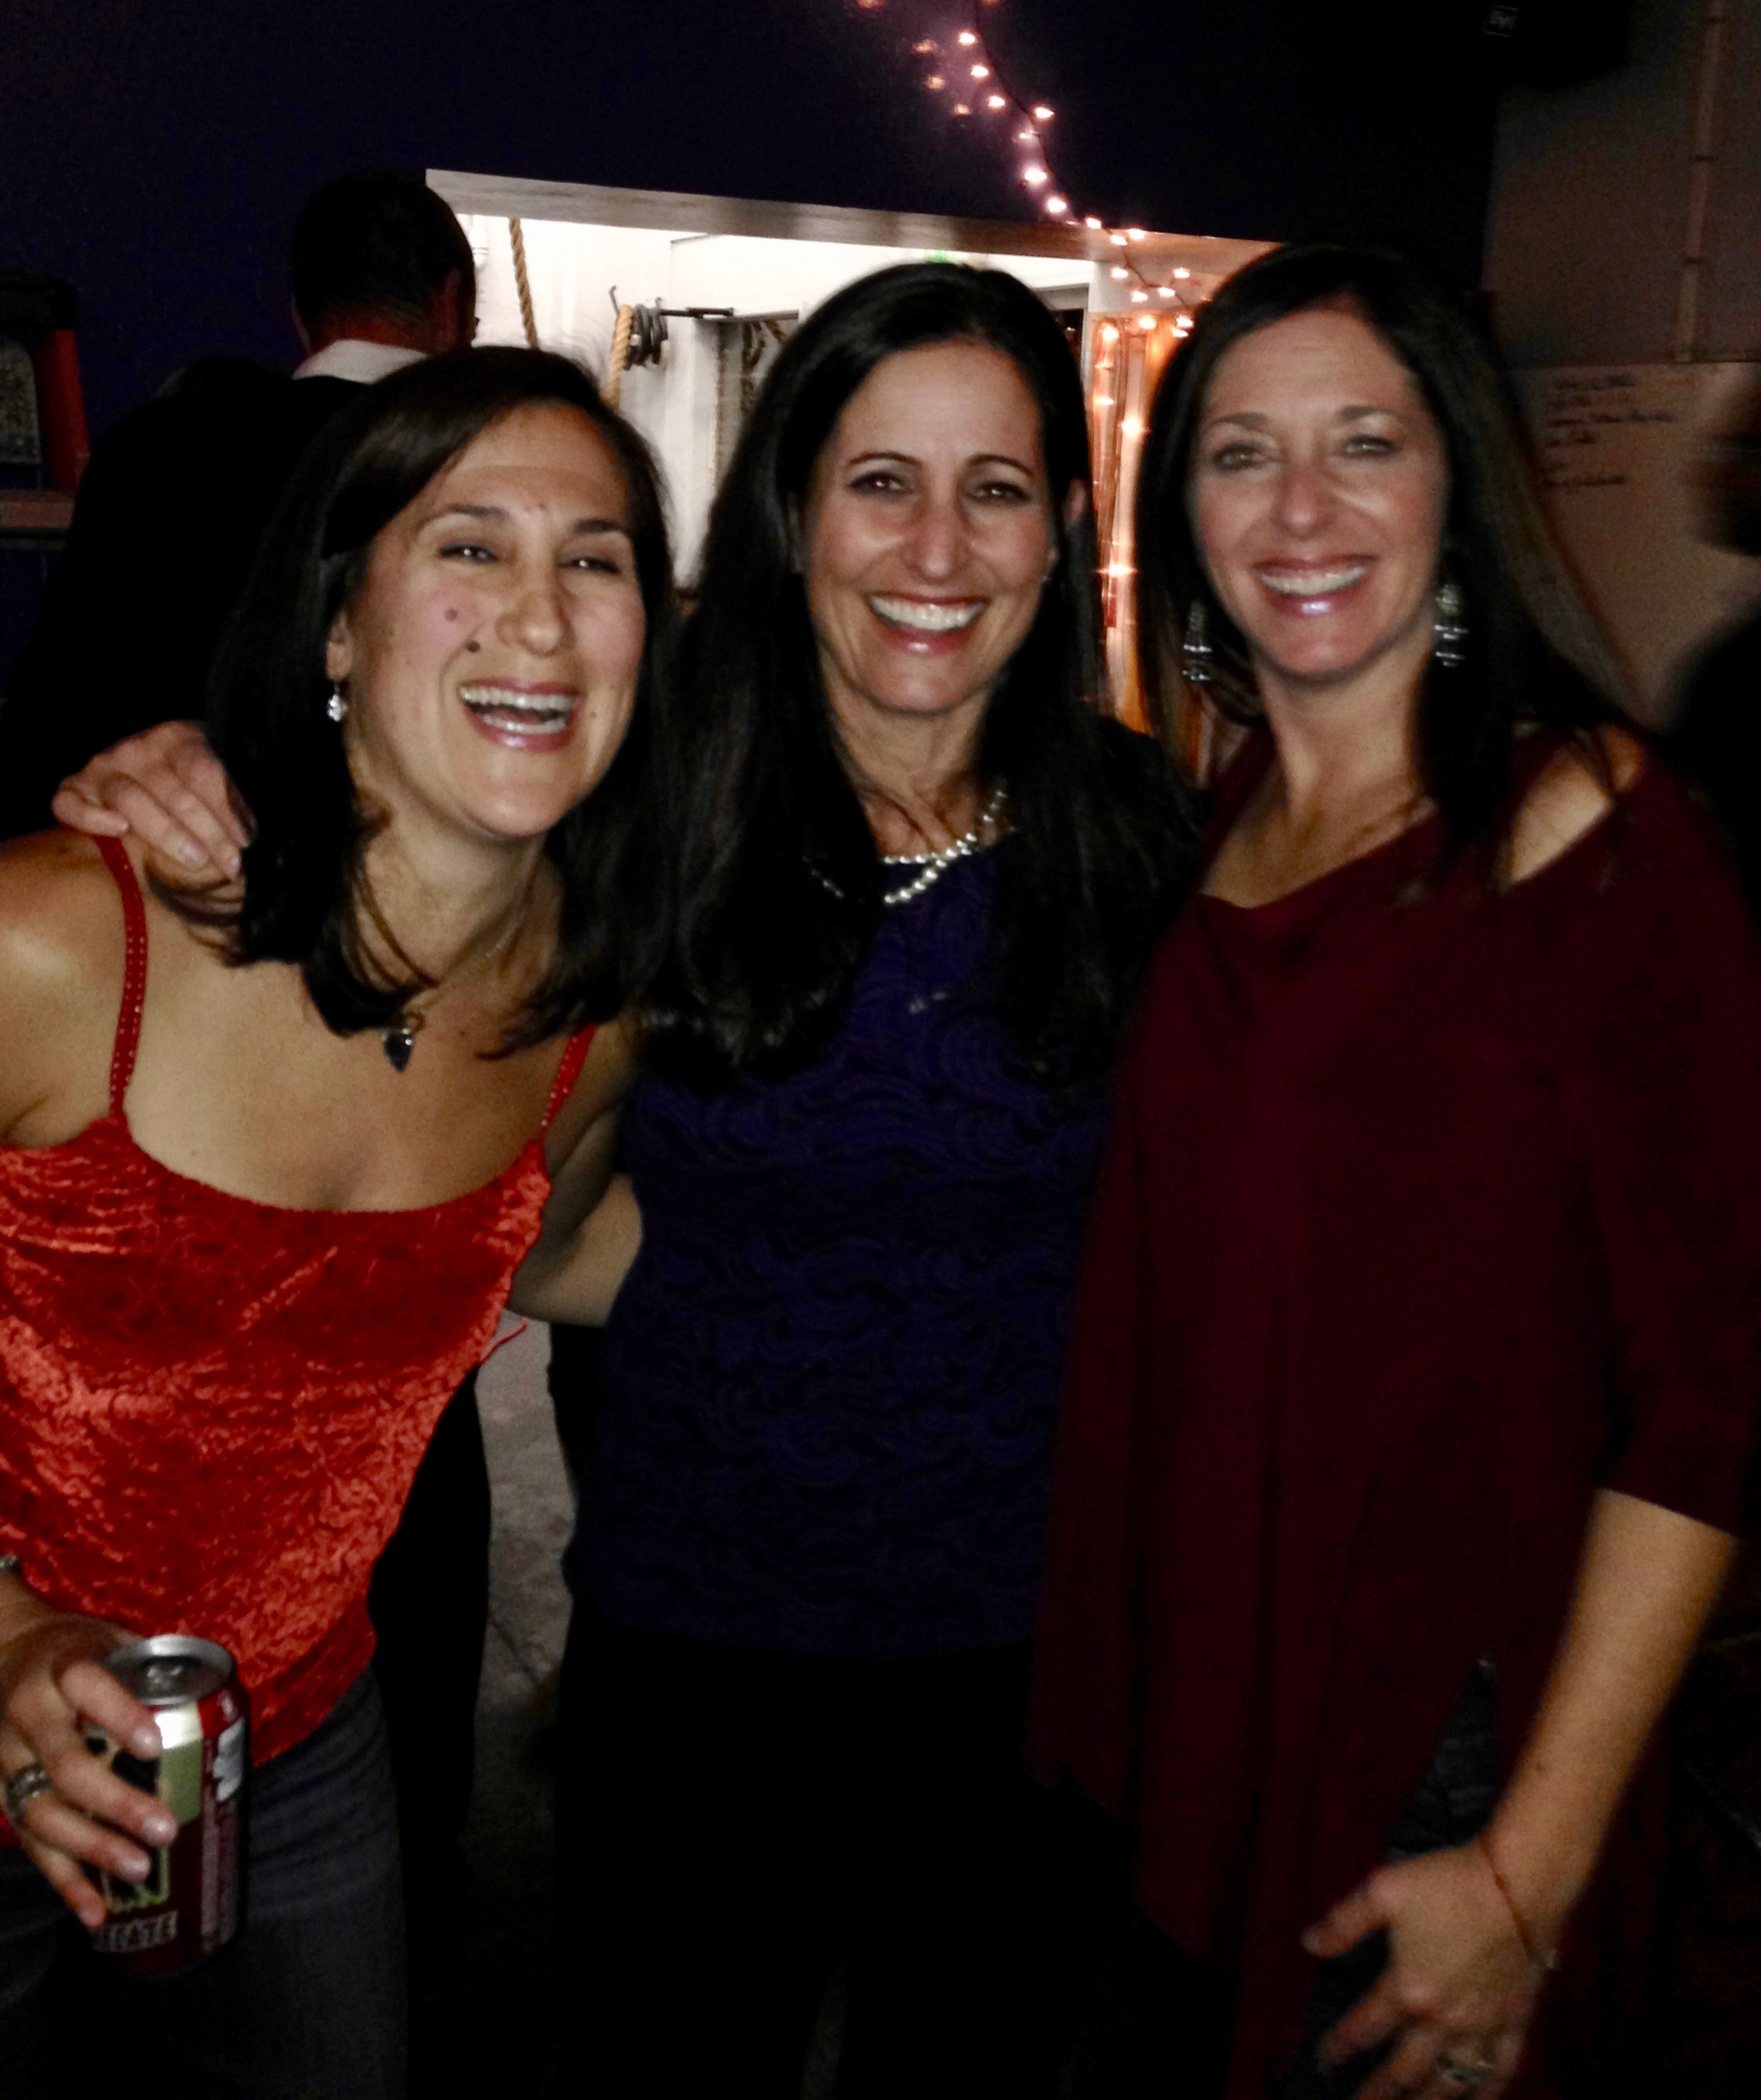 We HOPE TO SEE You At thE HOLIDAY PARTY! - This photo is from our 2013 party, and it's a reminder of the many people, like Marla and Whitney, who've been celebrating with us for MANY years. We look forward to toasting our community again and hope you'll be there.